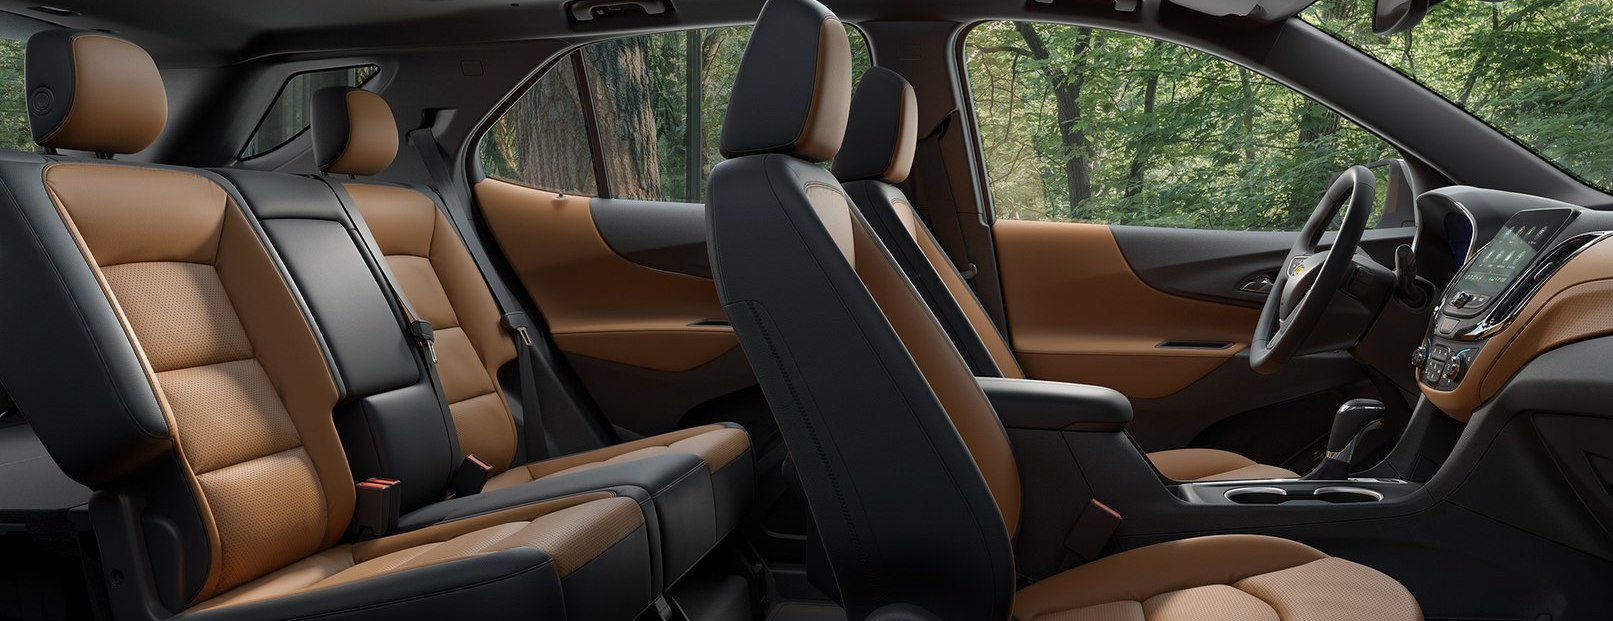 The Well-Protected Cabin of the 2020 Equinox